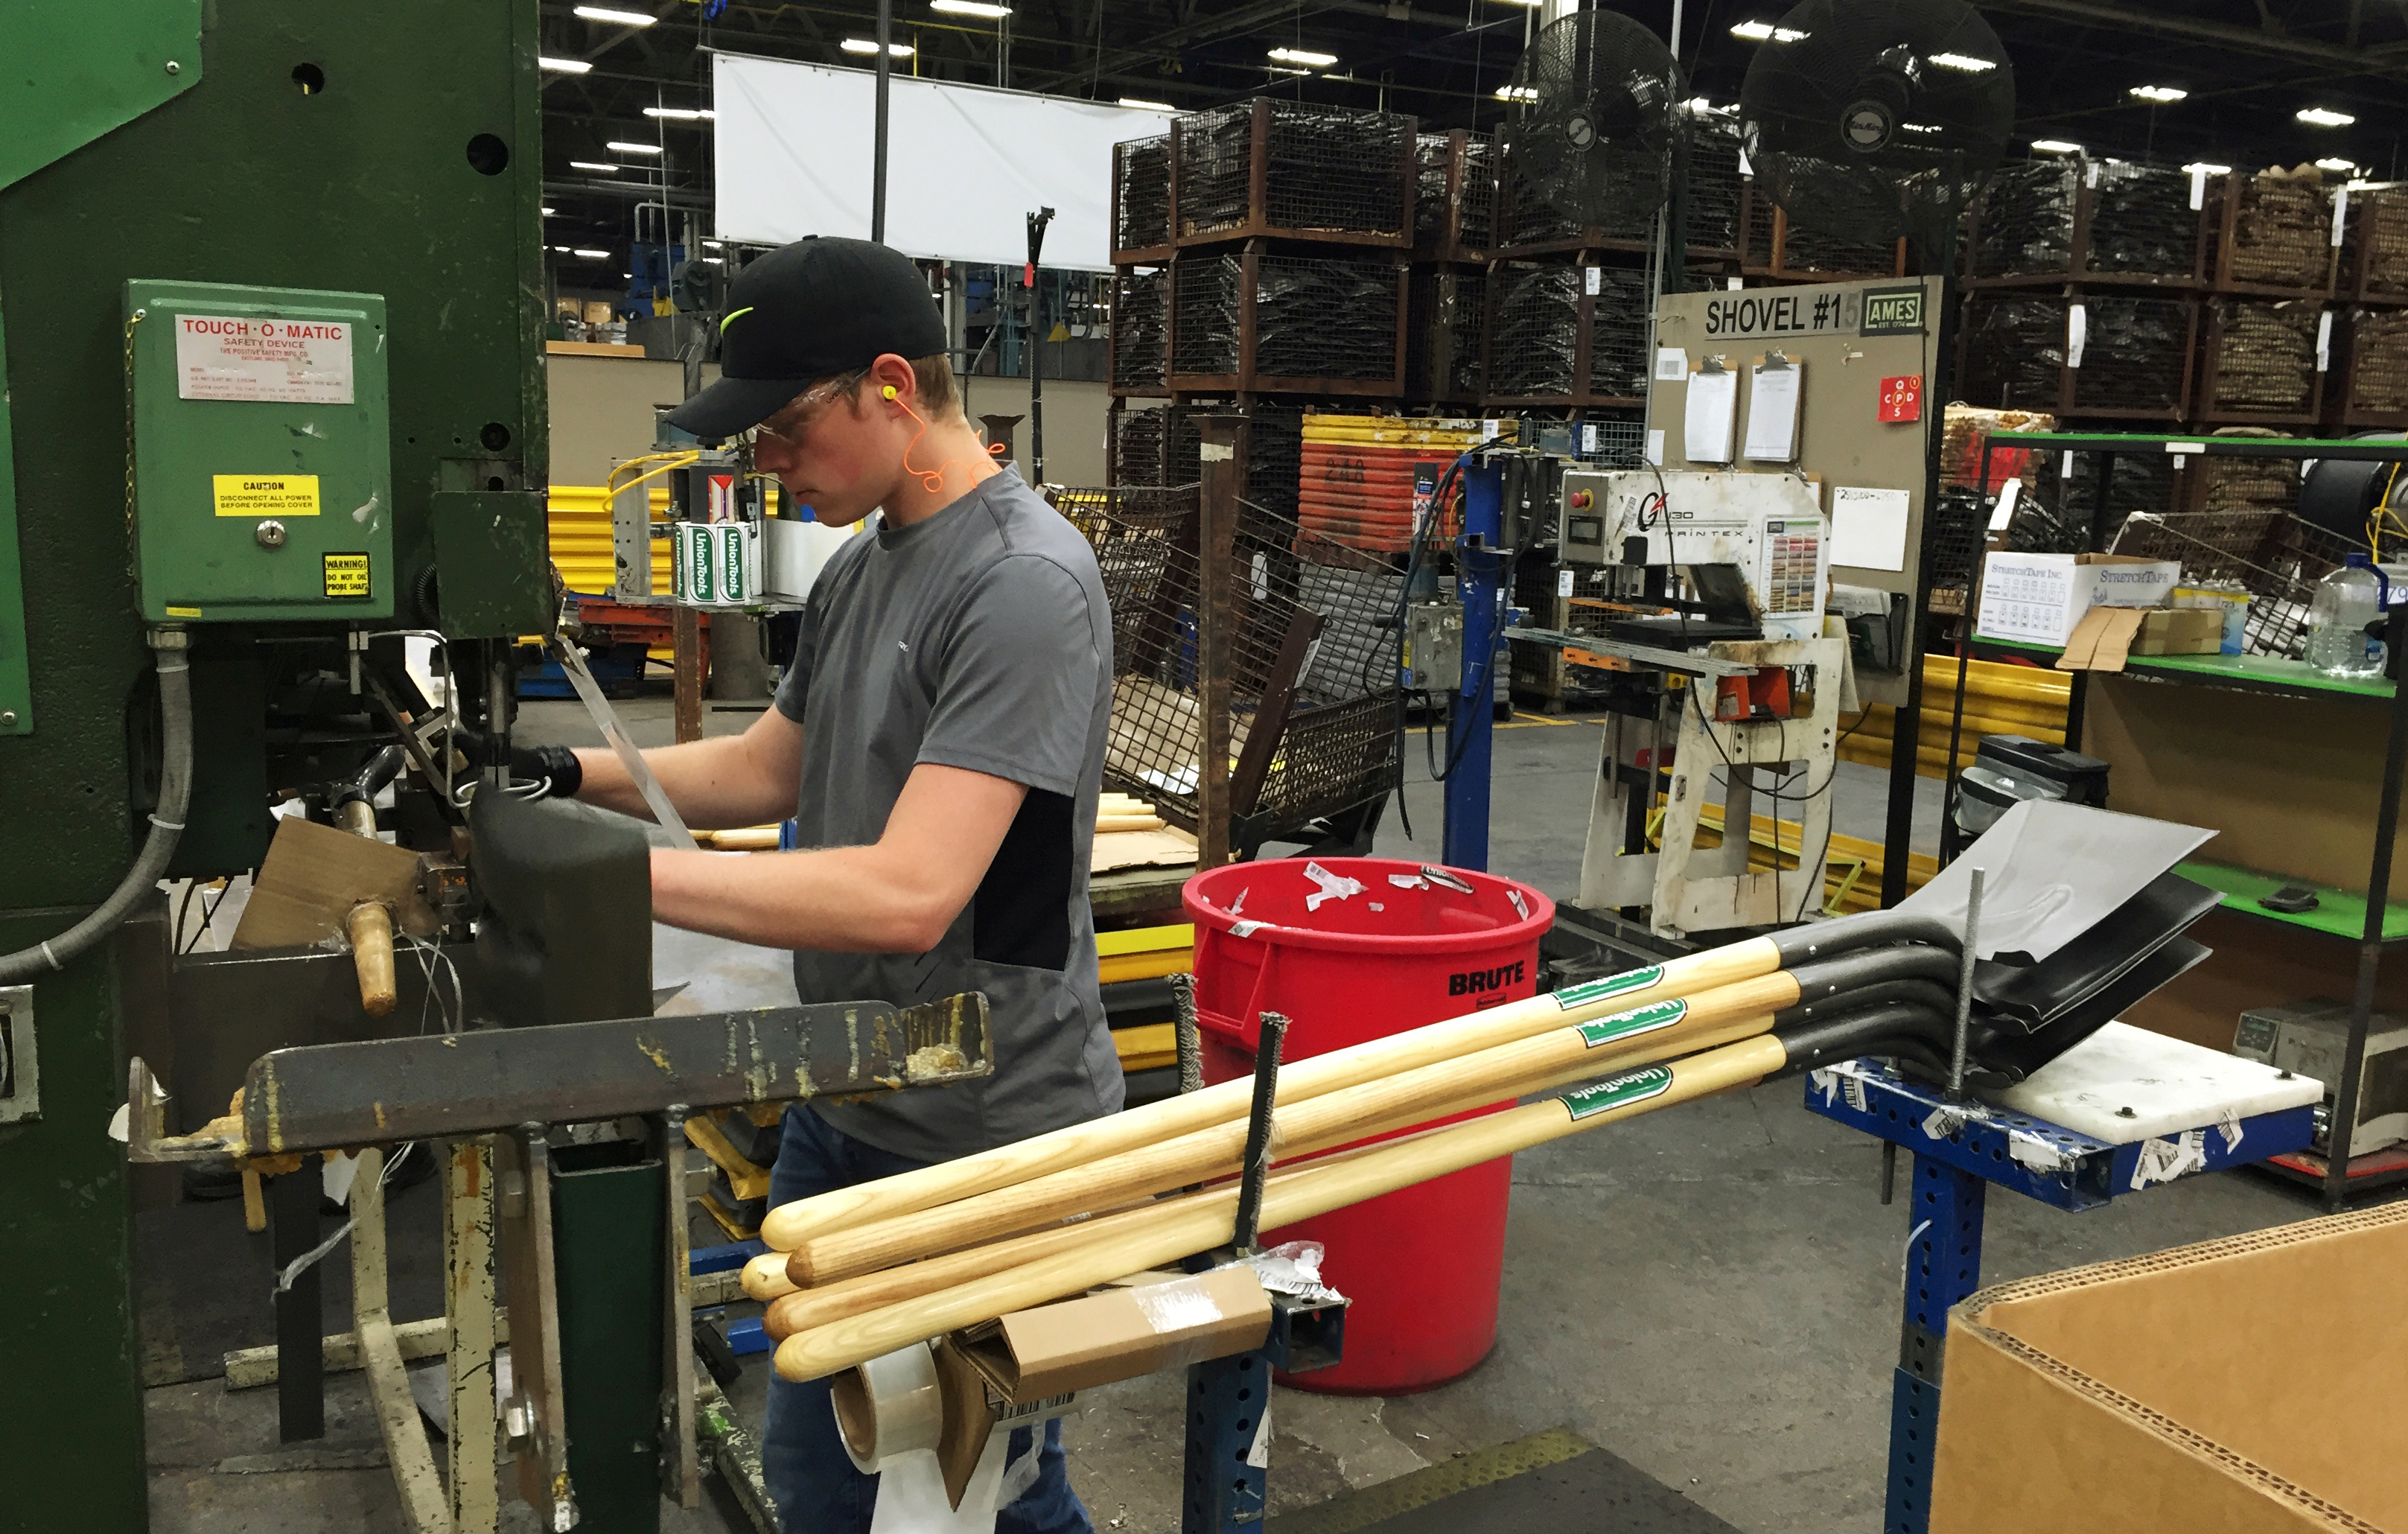 U.S. manufacturing production rebounds, outlook remains weak